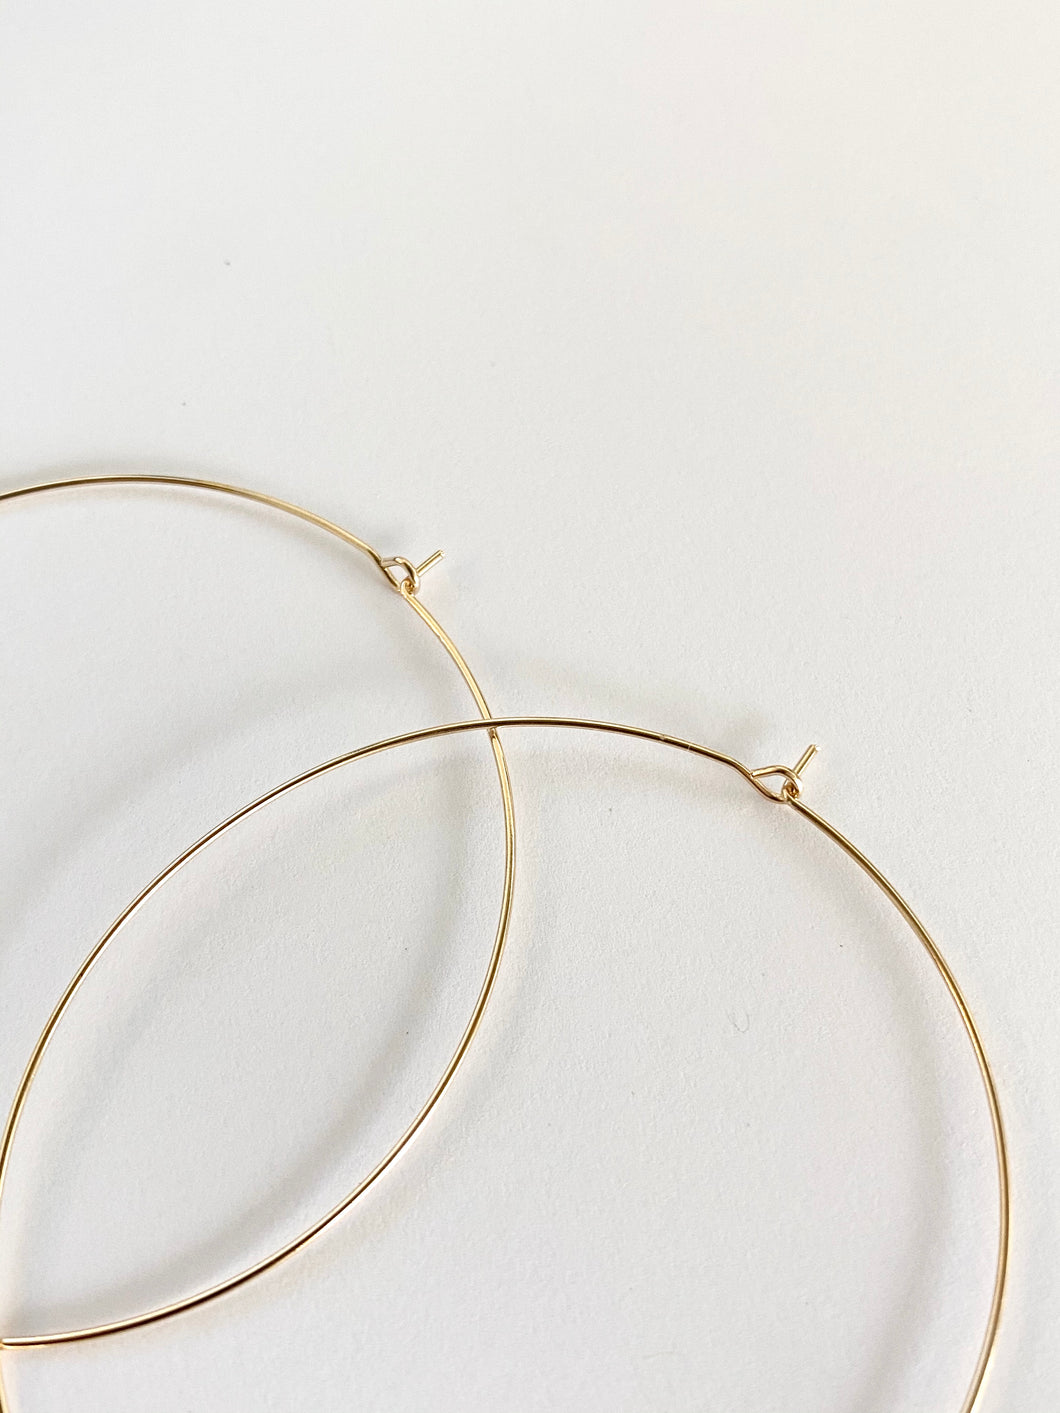 Very thin gold plated hoops earrings